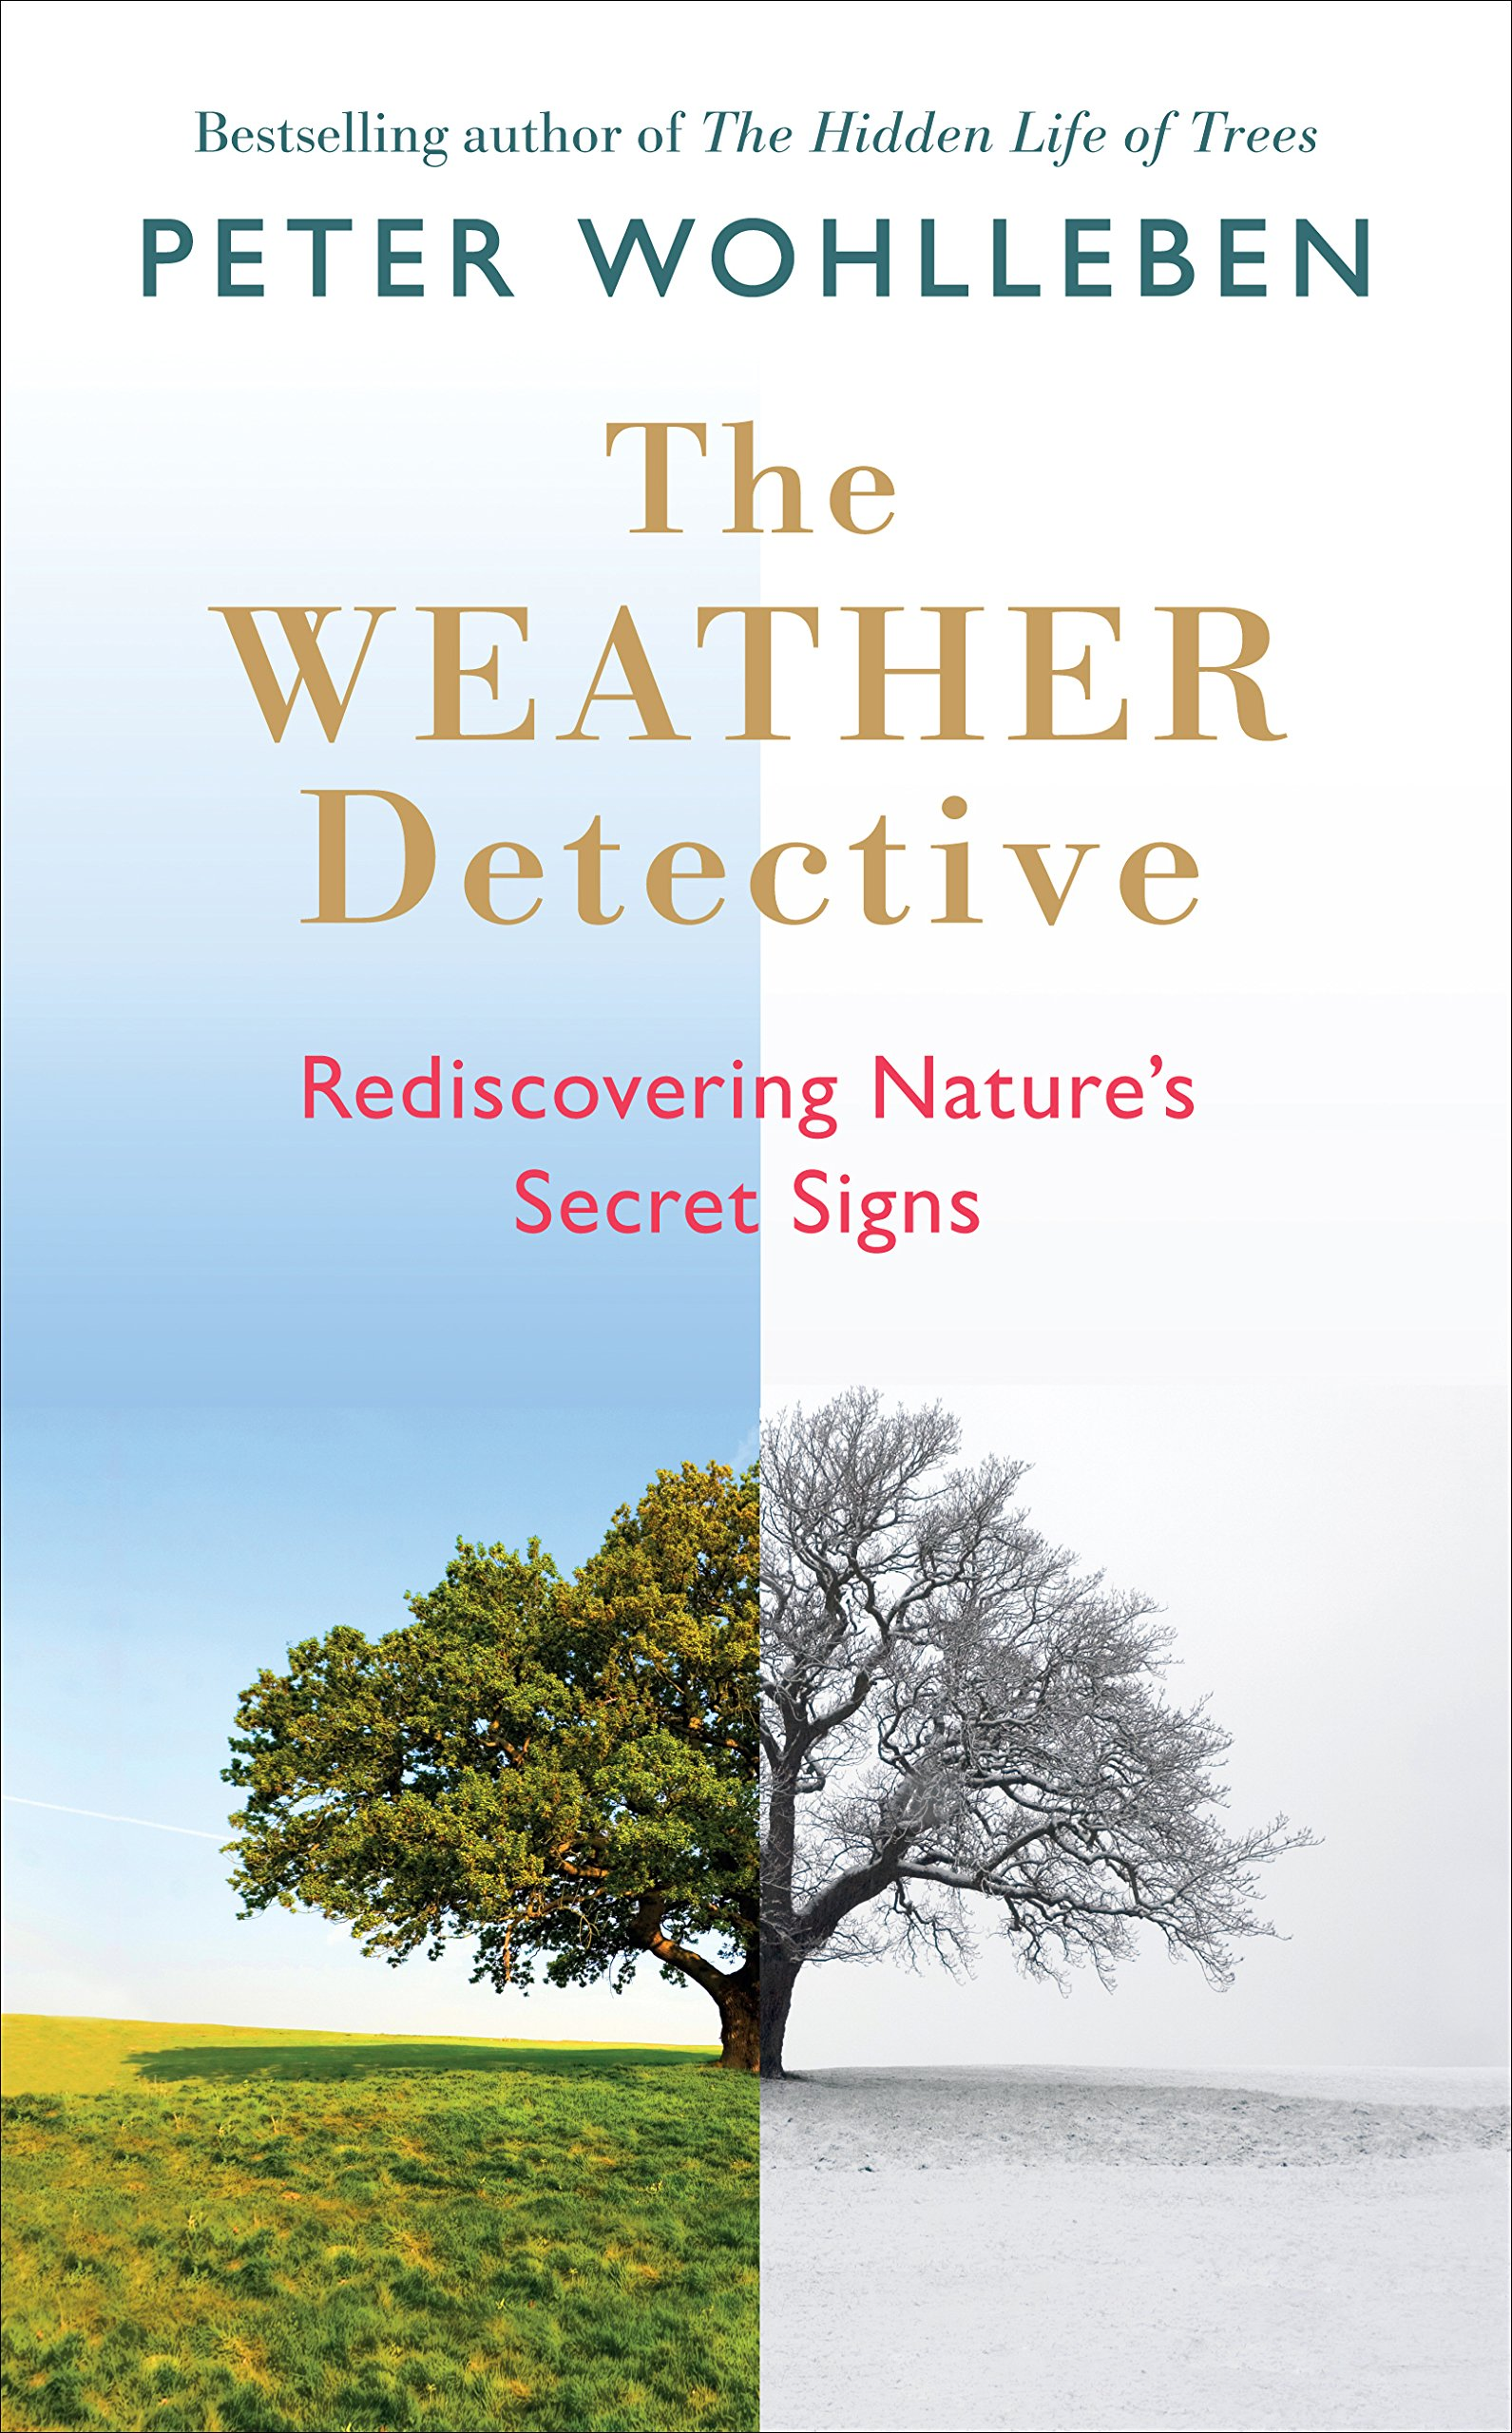 "The Weather Detective - by Peter Wohlleben""The Weather Detective calls attention to patterns in weather and in the world to help readers connect with the natural environment. Wohlleben advocates for interacting with and observing nature from a broad atmospheric-scale down to the scale of your garden. This book also reminds us urban busy bodies to take pleasure in time spent outdoors and relaxing outside.""- Margot Halpin, Landscape Designer"